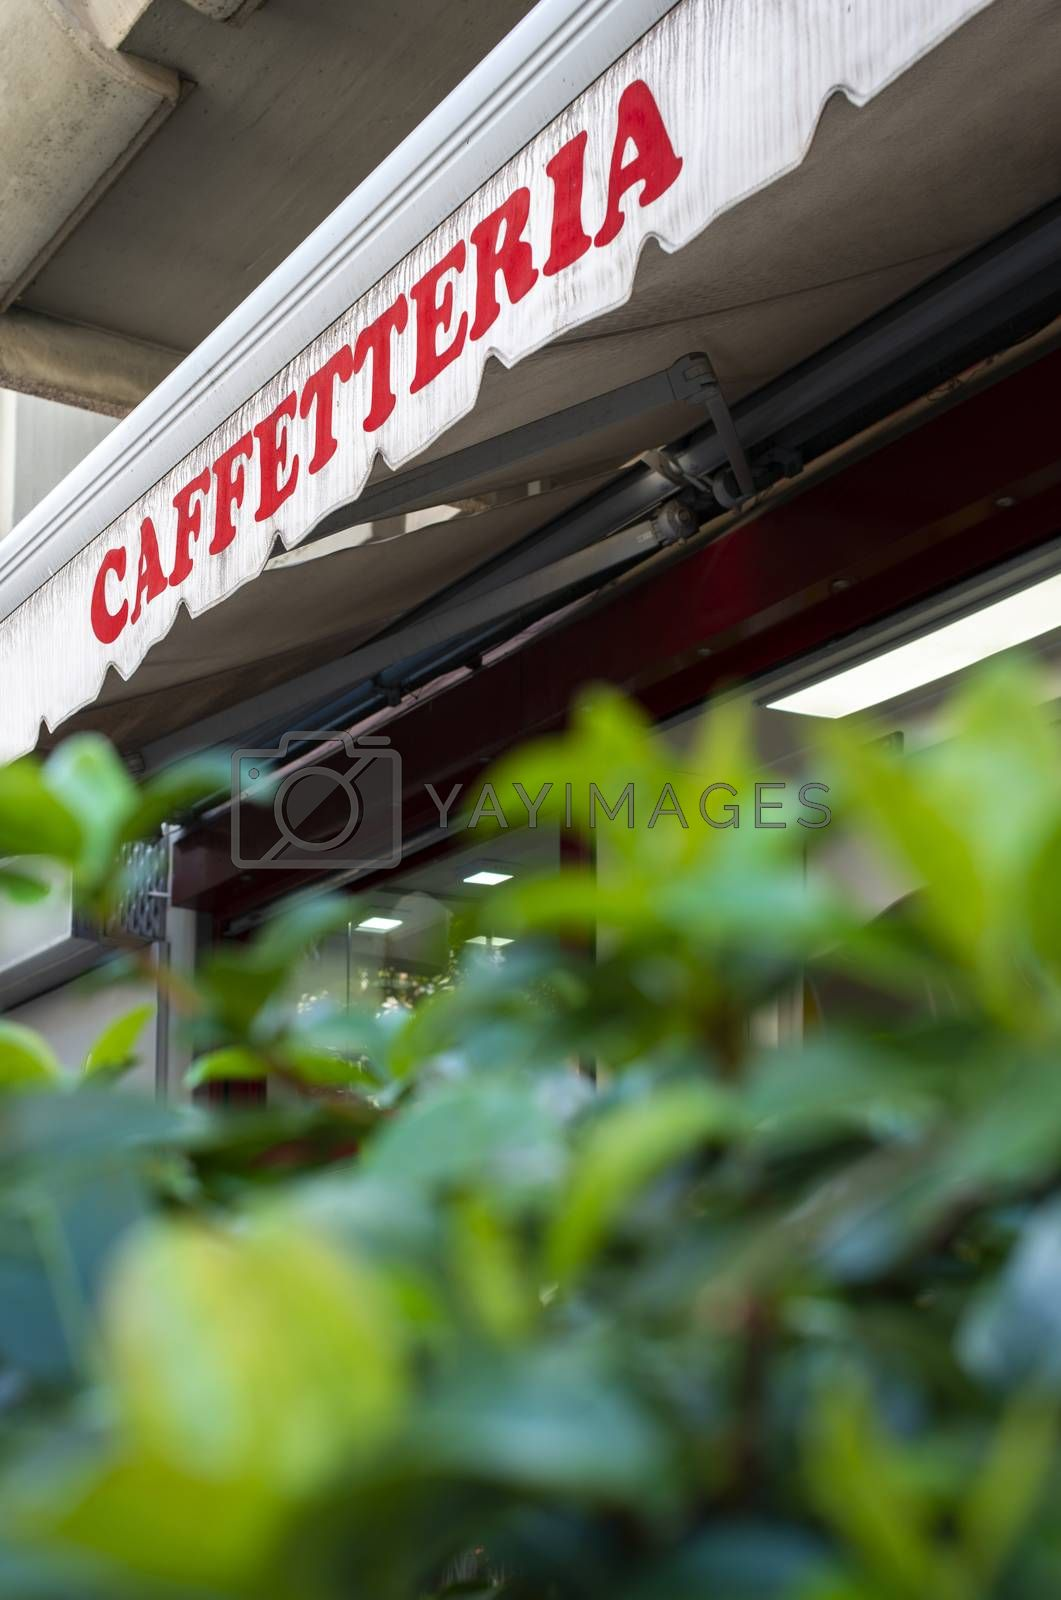 Text caffetteria on sunblind. Italian coffee shop. Facade on coffee shop. Green foliage in front of cafe and sweets shop.